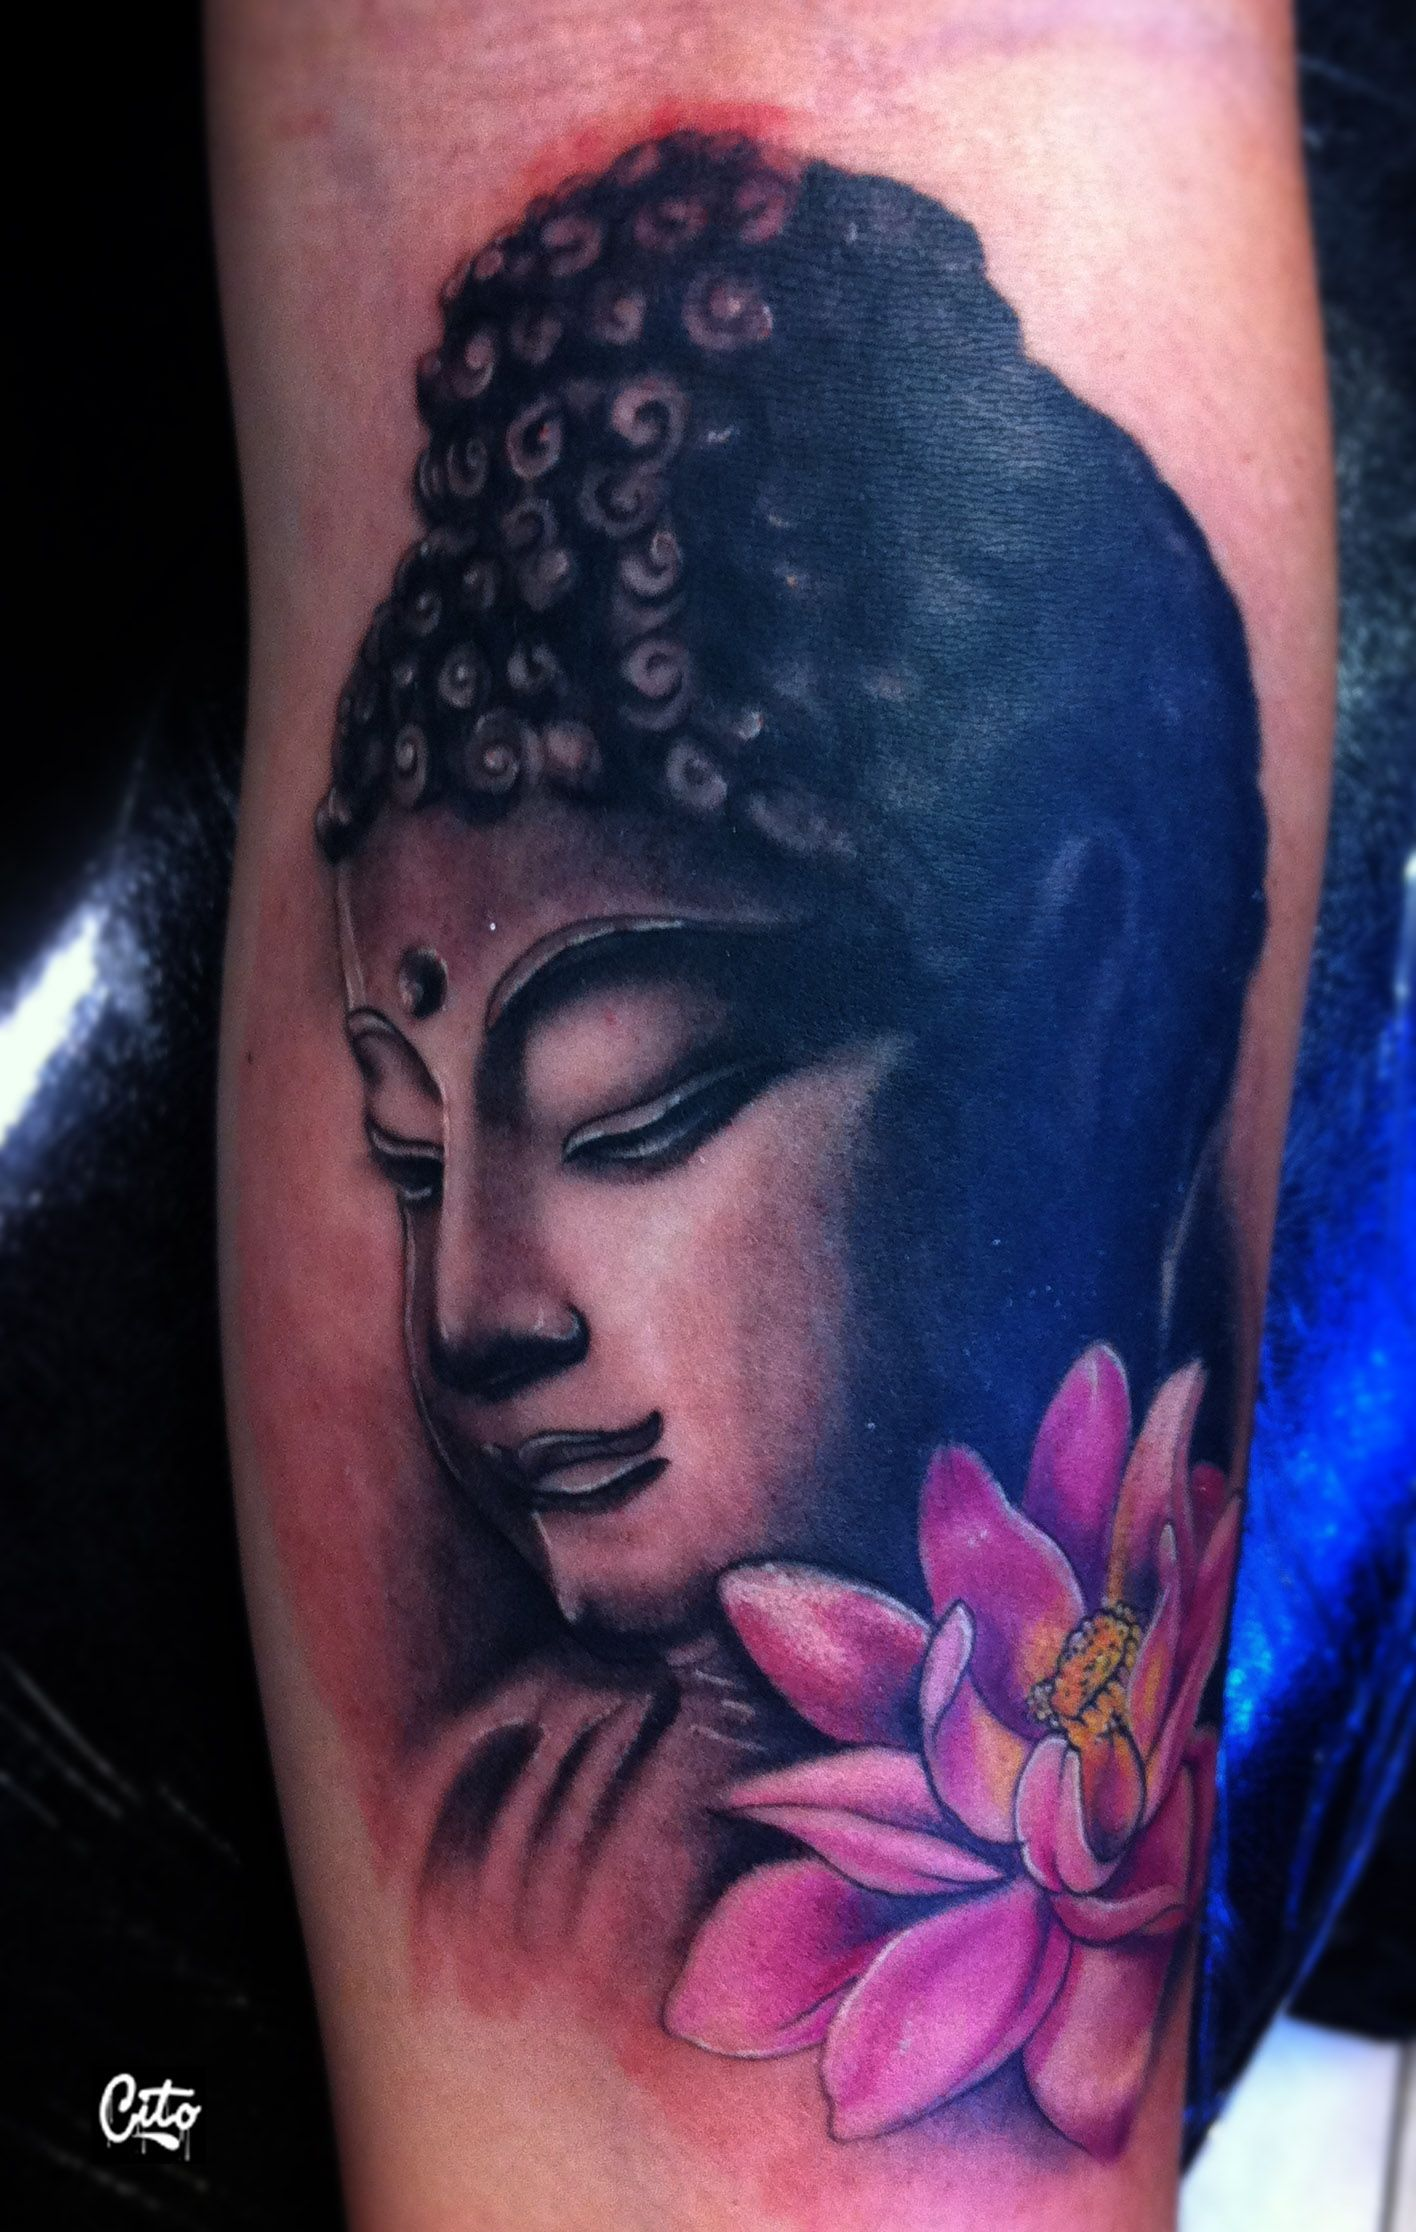 buddhist tattoos meaning and symbols | Buddha tattoos ...